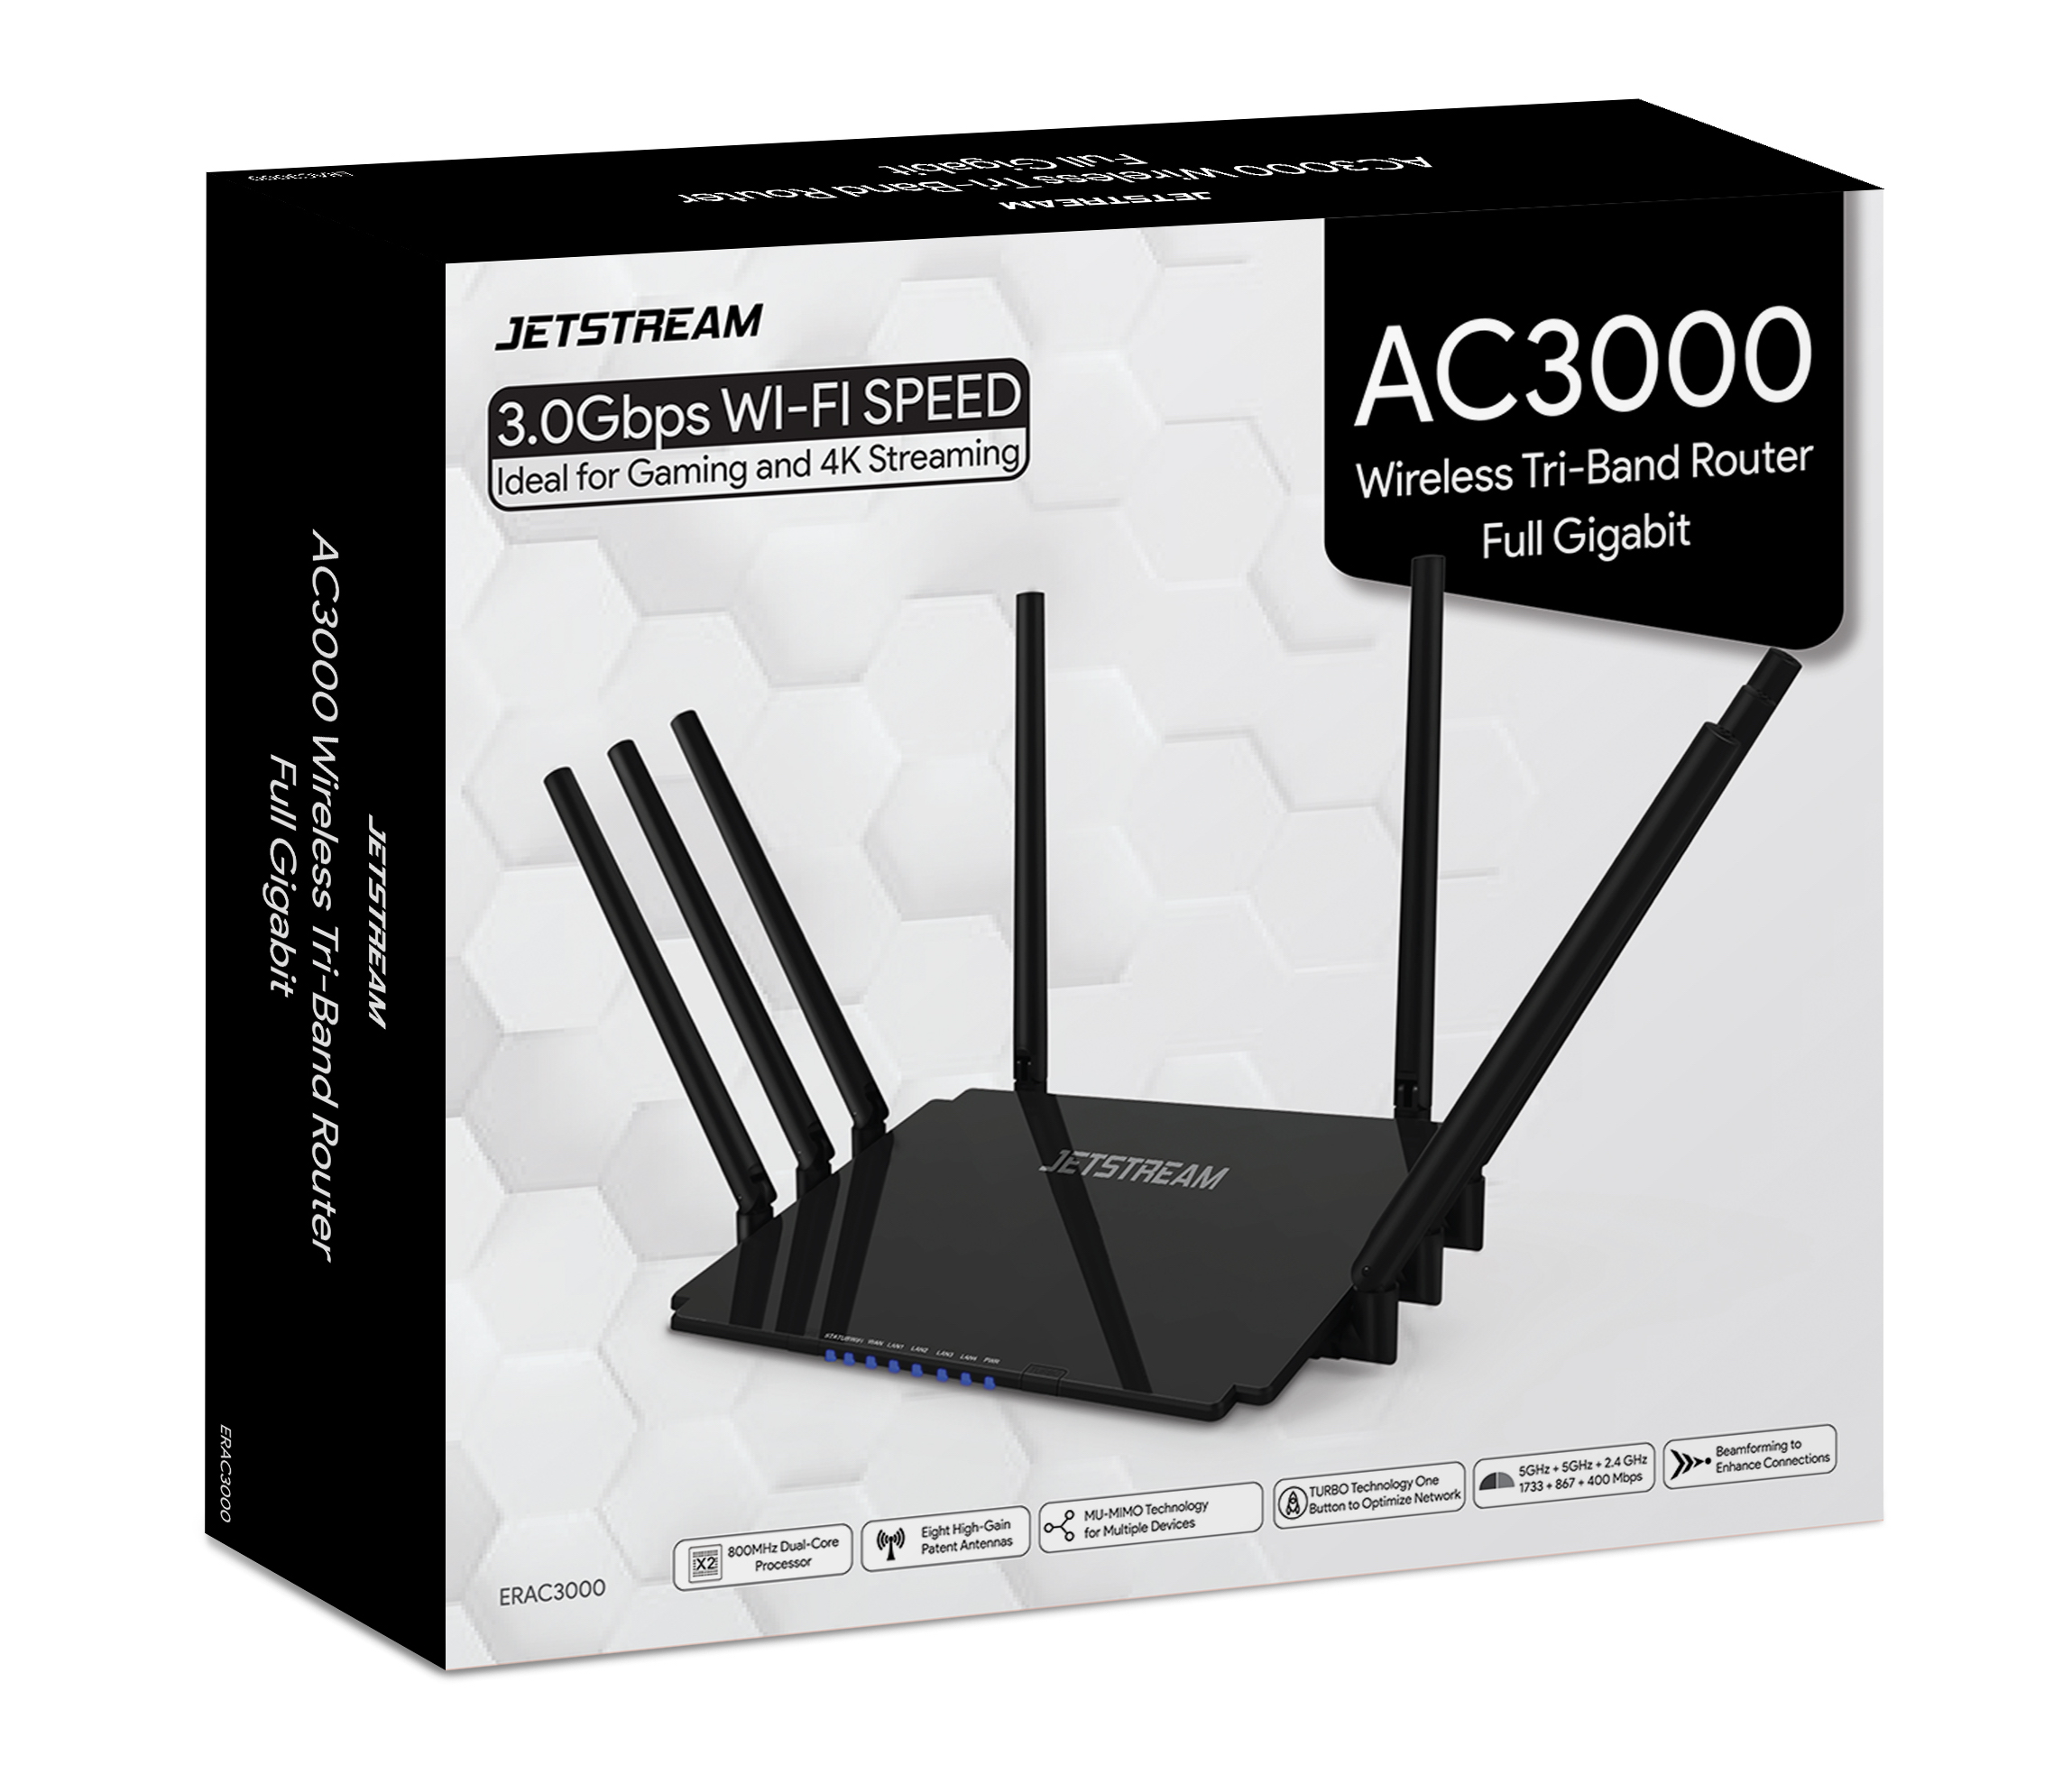 AOPEN AIR-101 ROUTER DRIVERS DOWNLOAD FREE